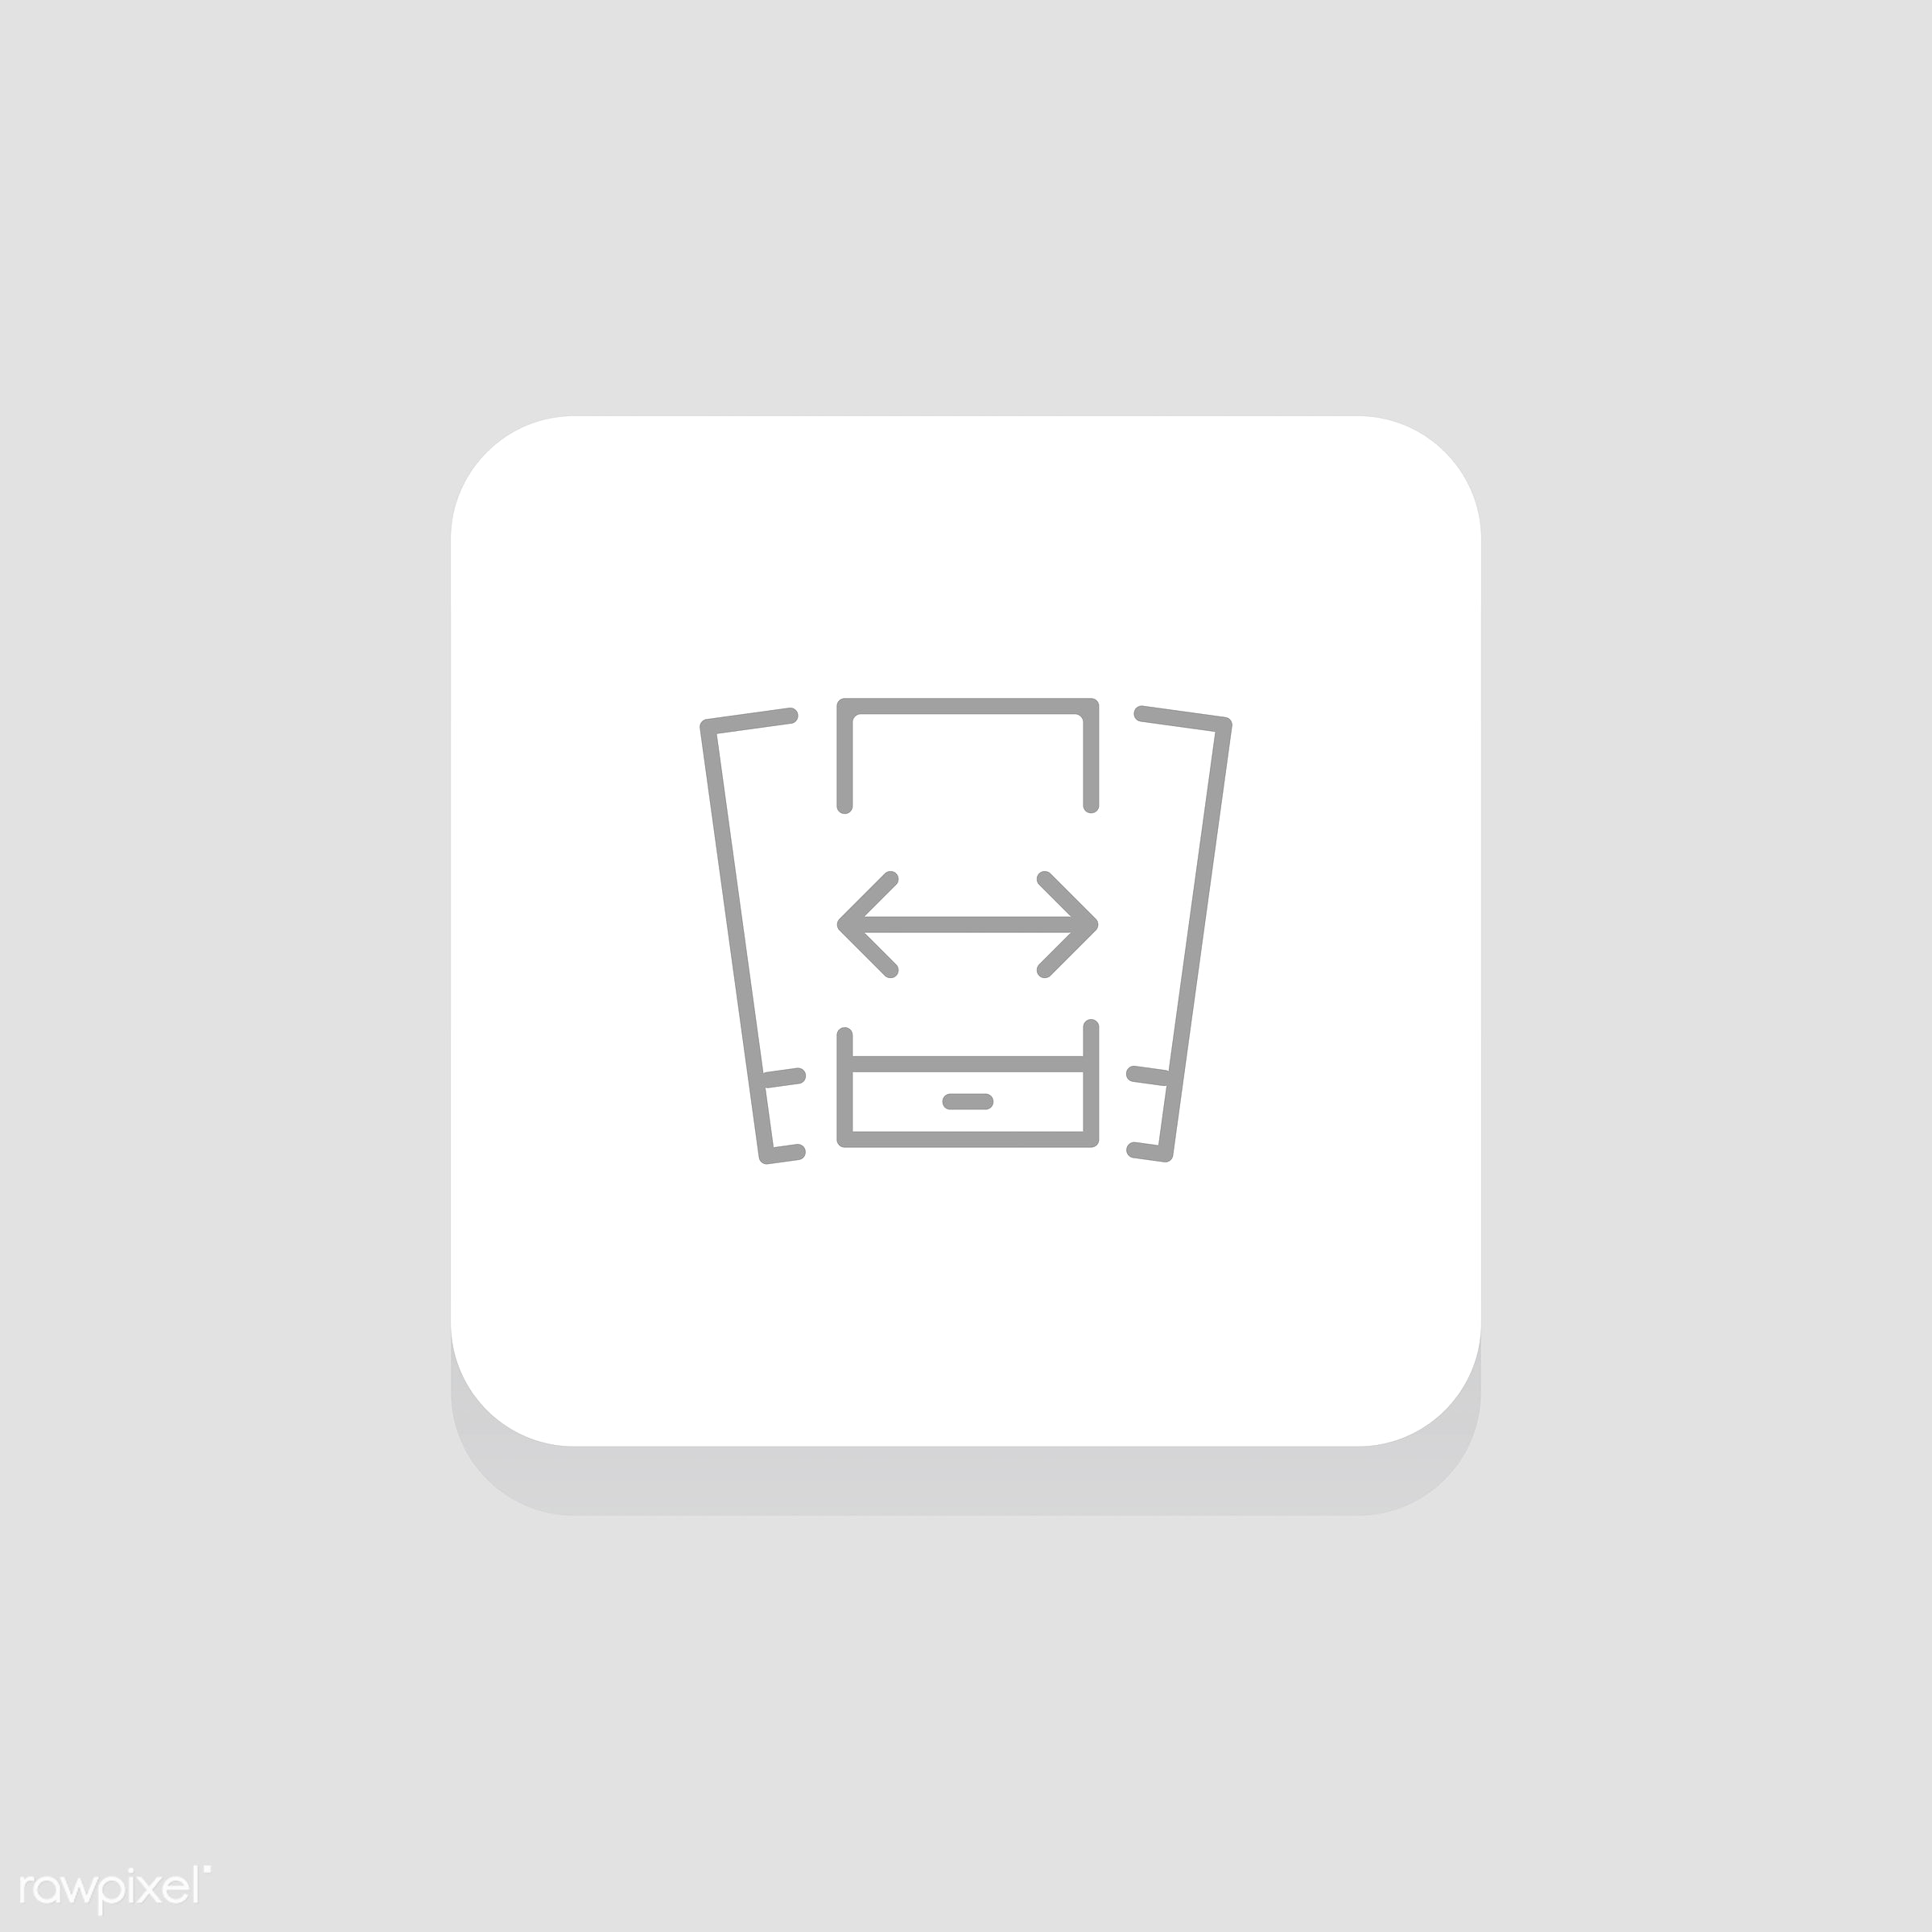 Vector of telephone icon - call, cellphone, design, flat, graphic, icon, illustration, isolated, layout, mobile phone, style...